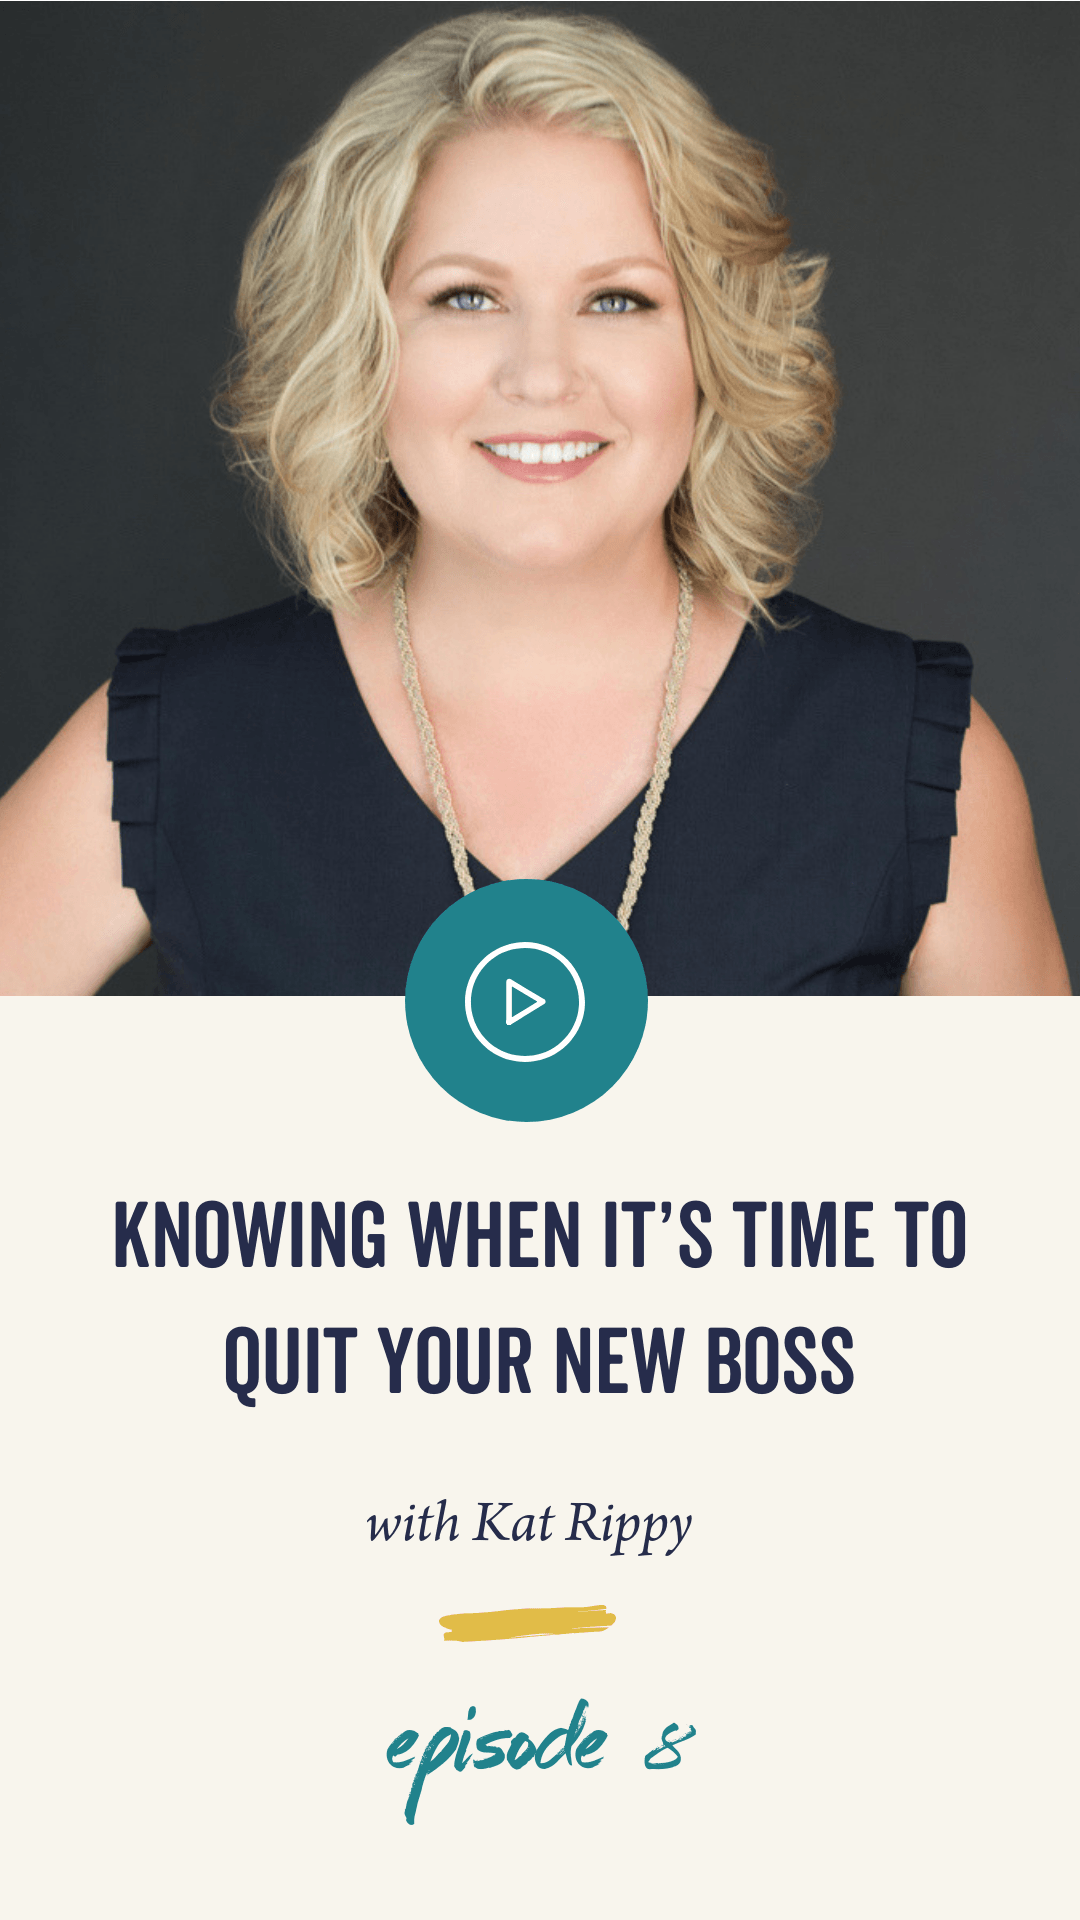 Episode 008: Knowing When It's Time To Quit Your New Boss